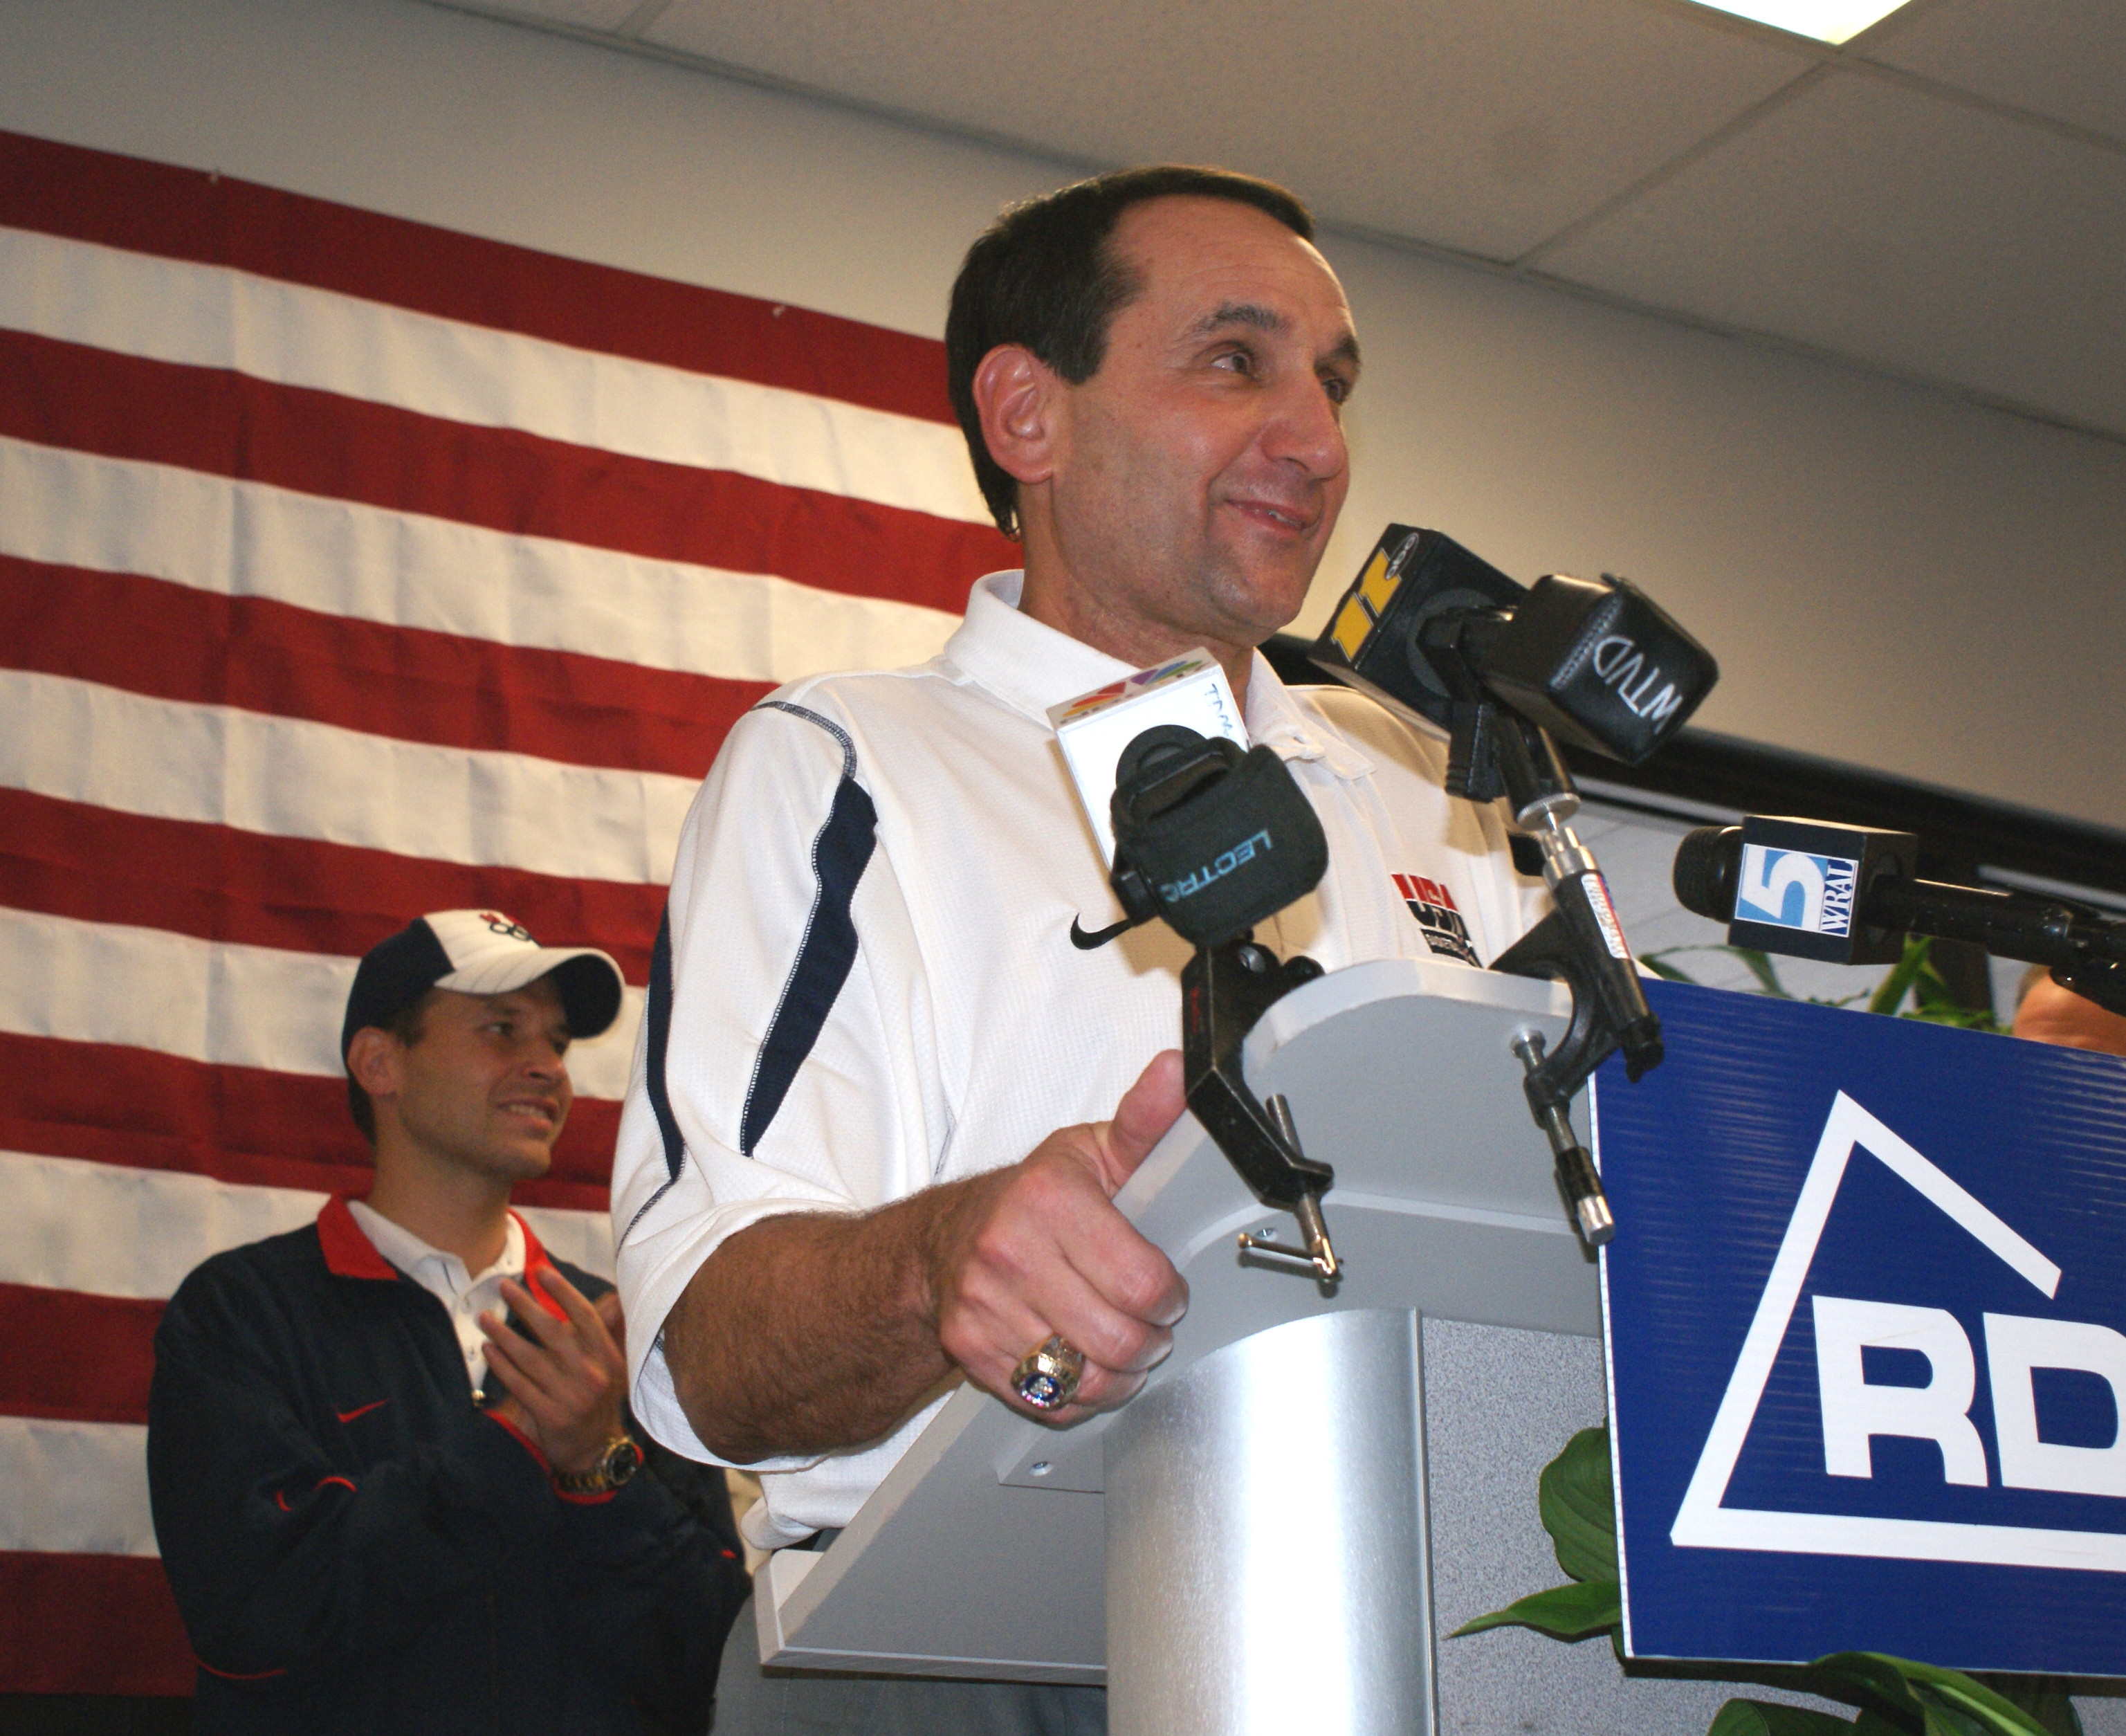 When Krzyzewski helped return Gold for Team USA there was a sense of relief.  In this picture Coach addresses fans at RDU upon his return and there is a big smile on his face.  The smile was there again during his annual summer press conference where he addressed the state of affairs on all things Duke and USA Basketball. - BDN Photo